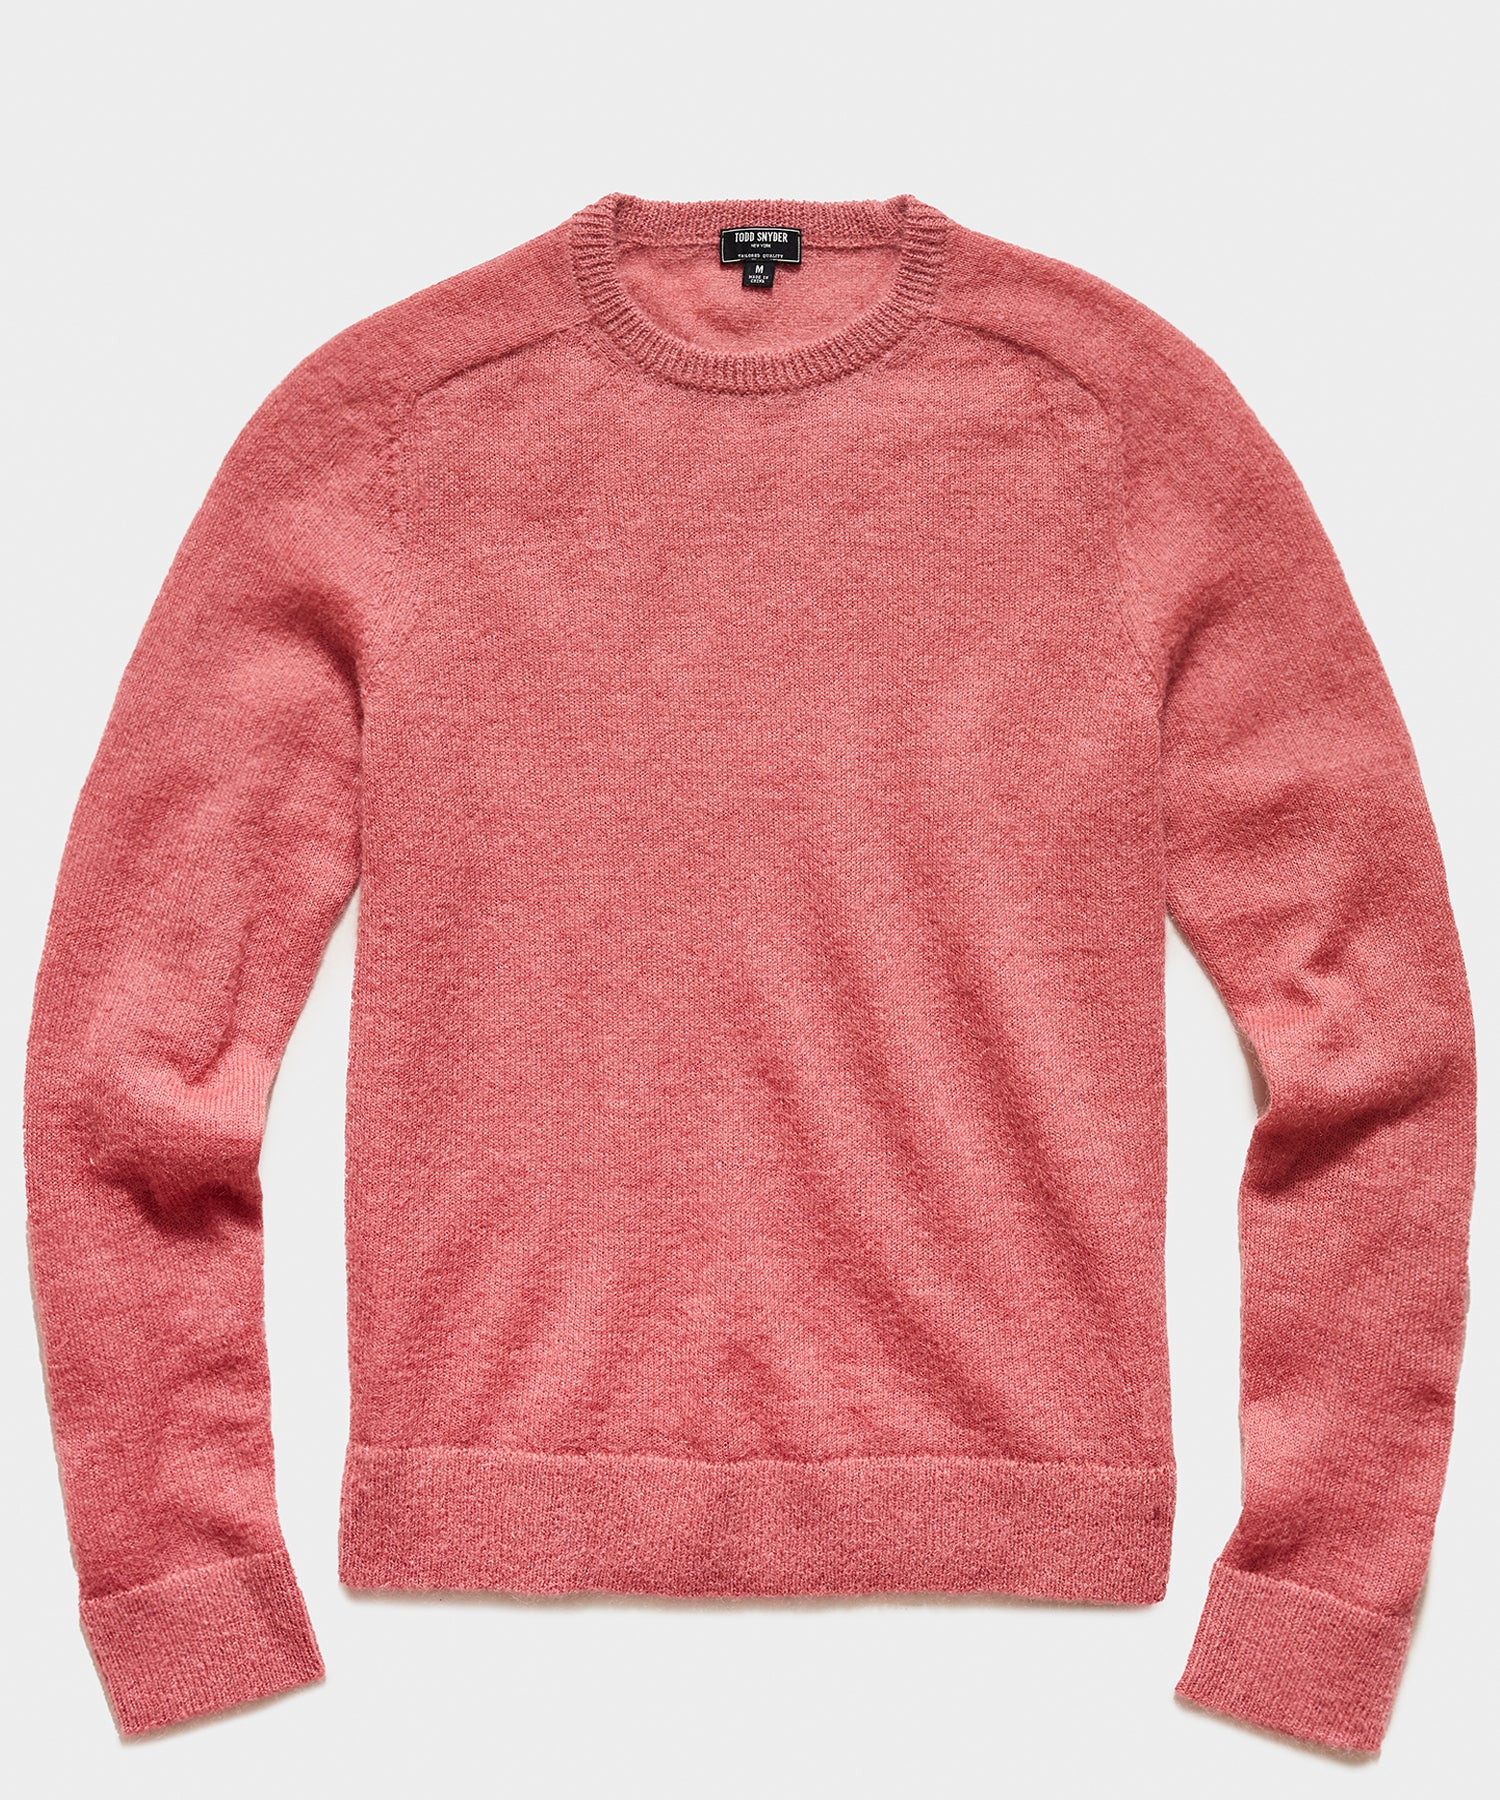 Brushed Italian Mohair Wool Sweater in Vintage Rose